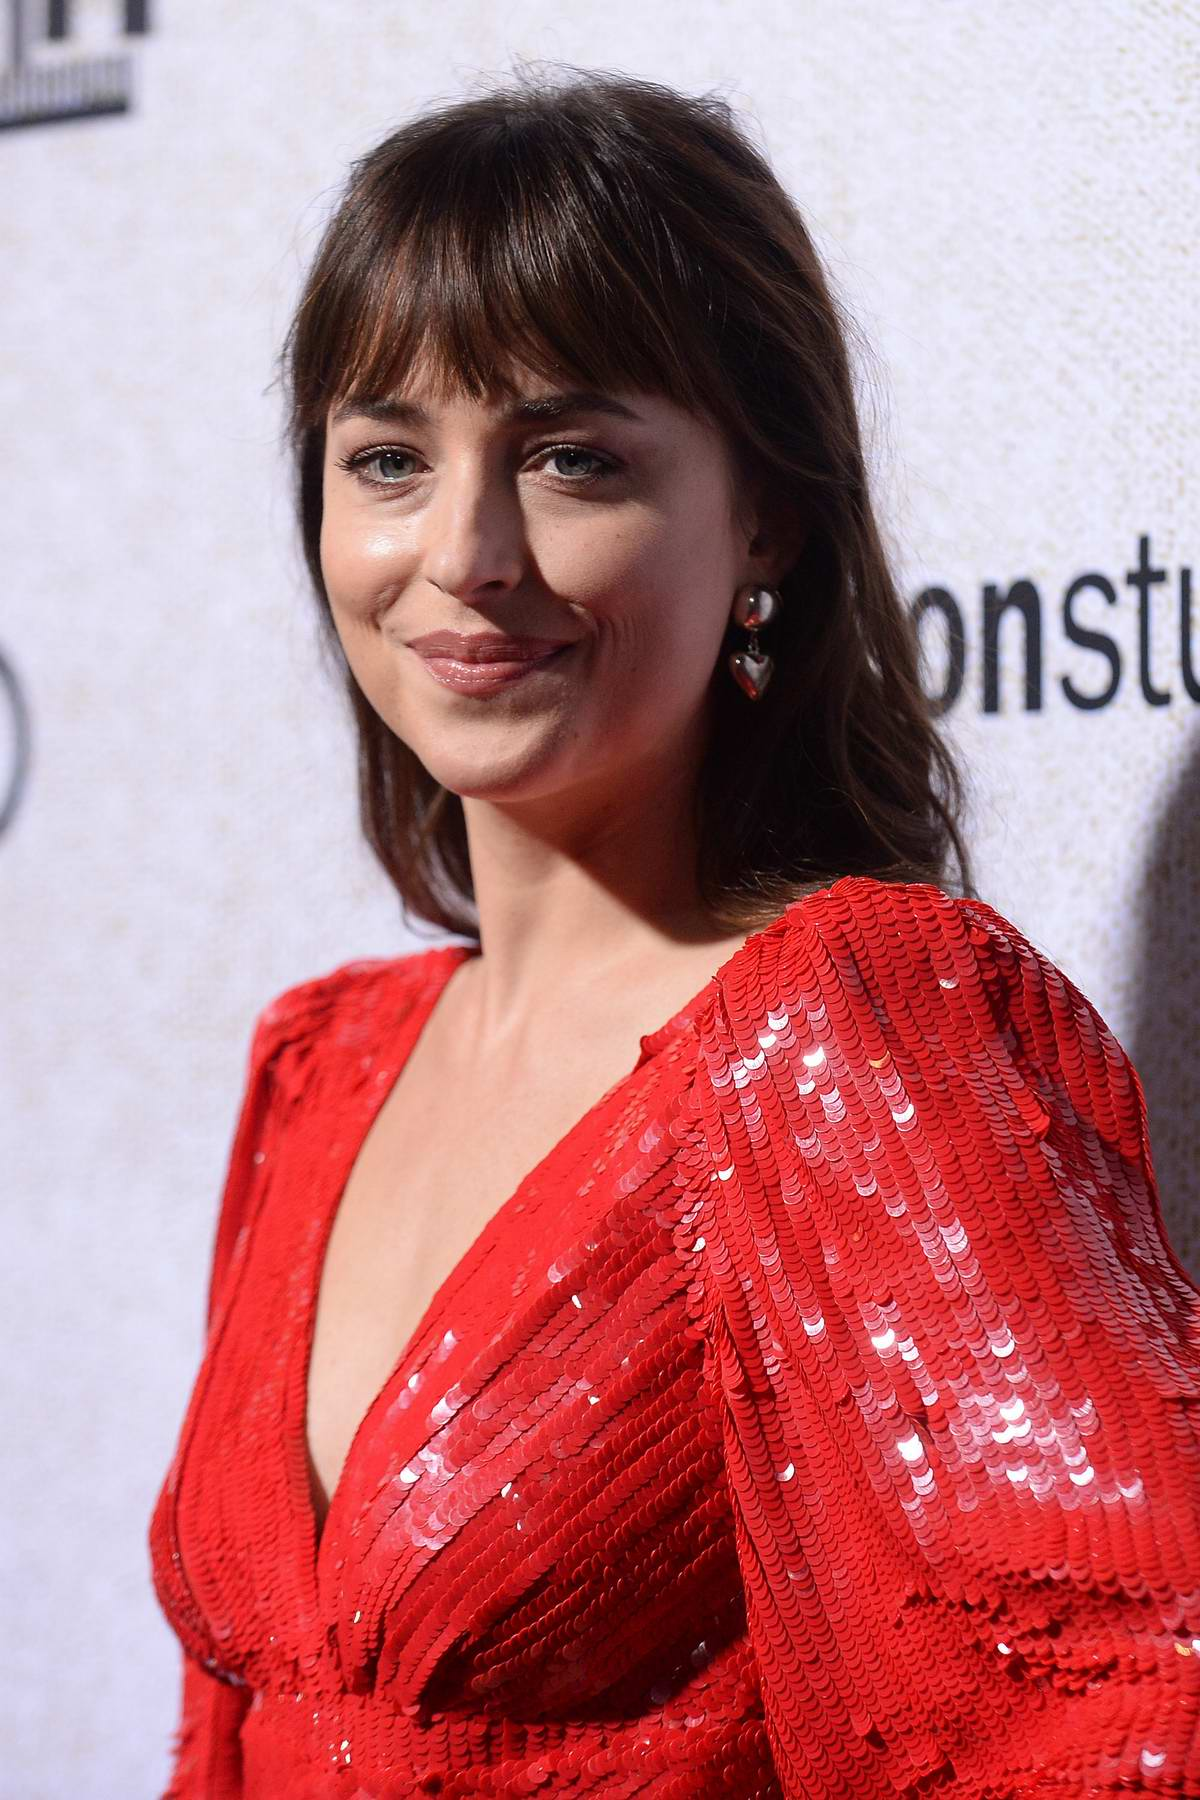 Dakota Johnson attends the Hollywood Premiere of 'Suspiria' in Los Angeles